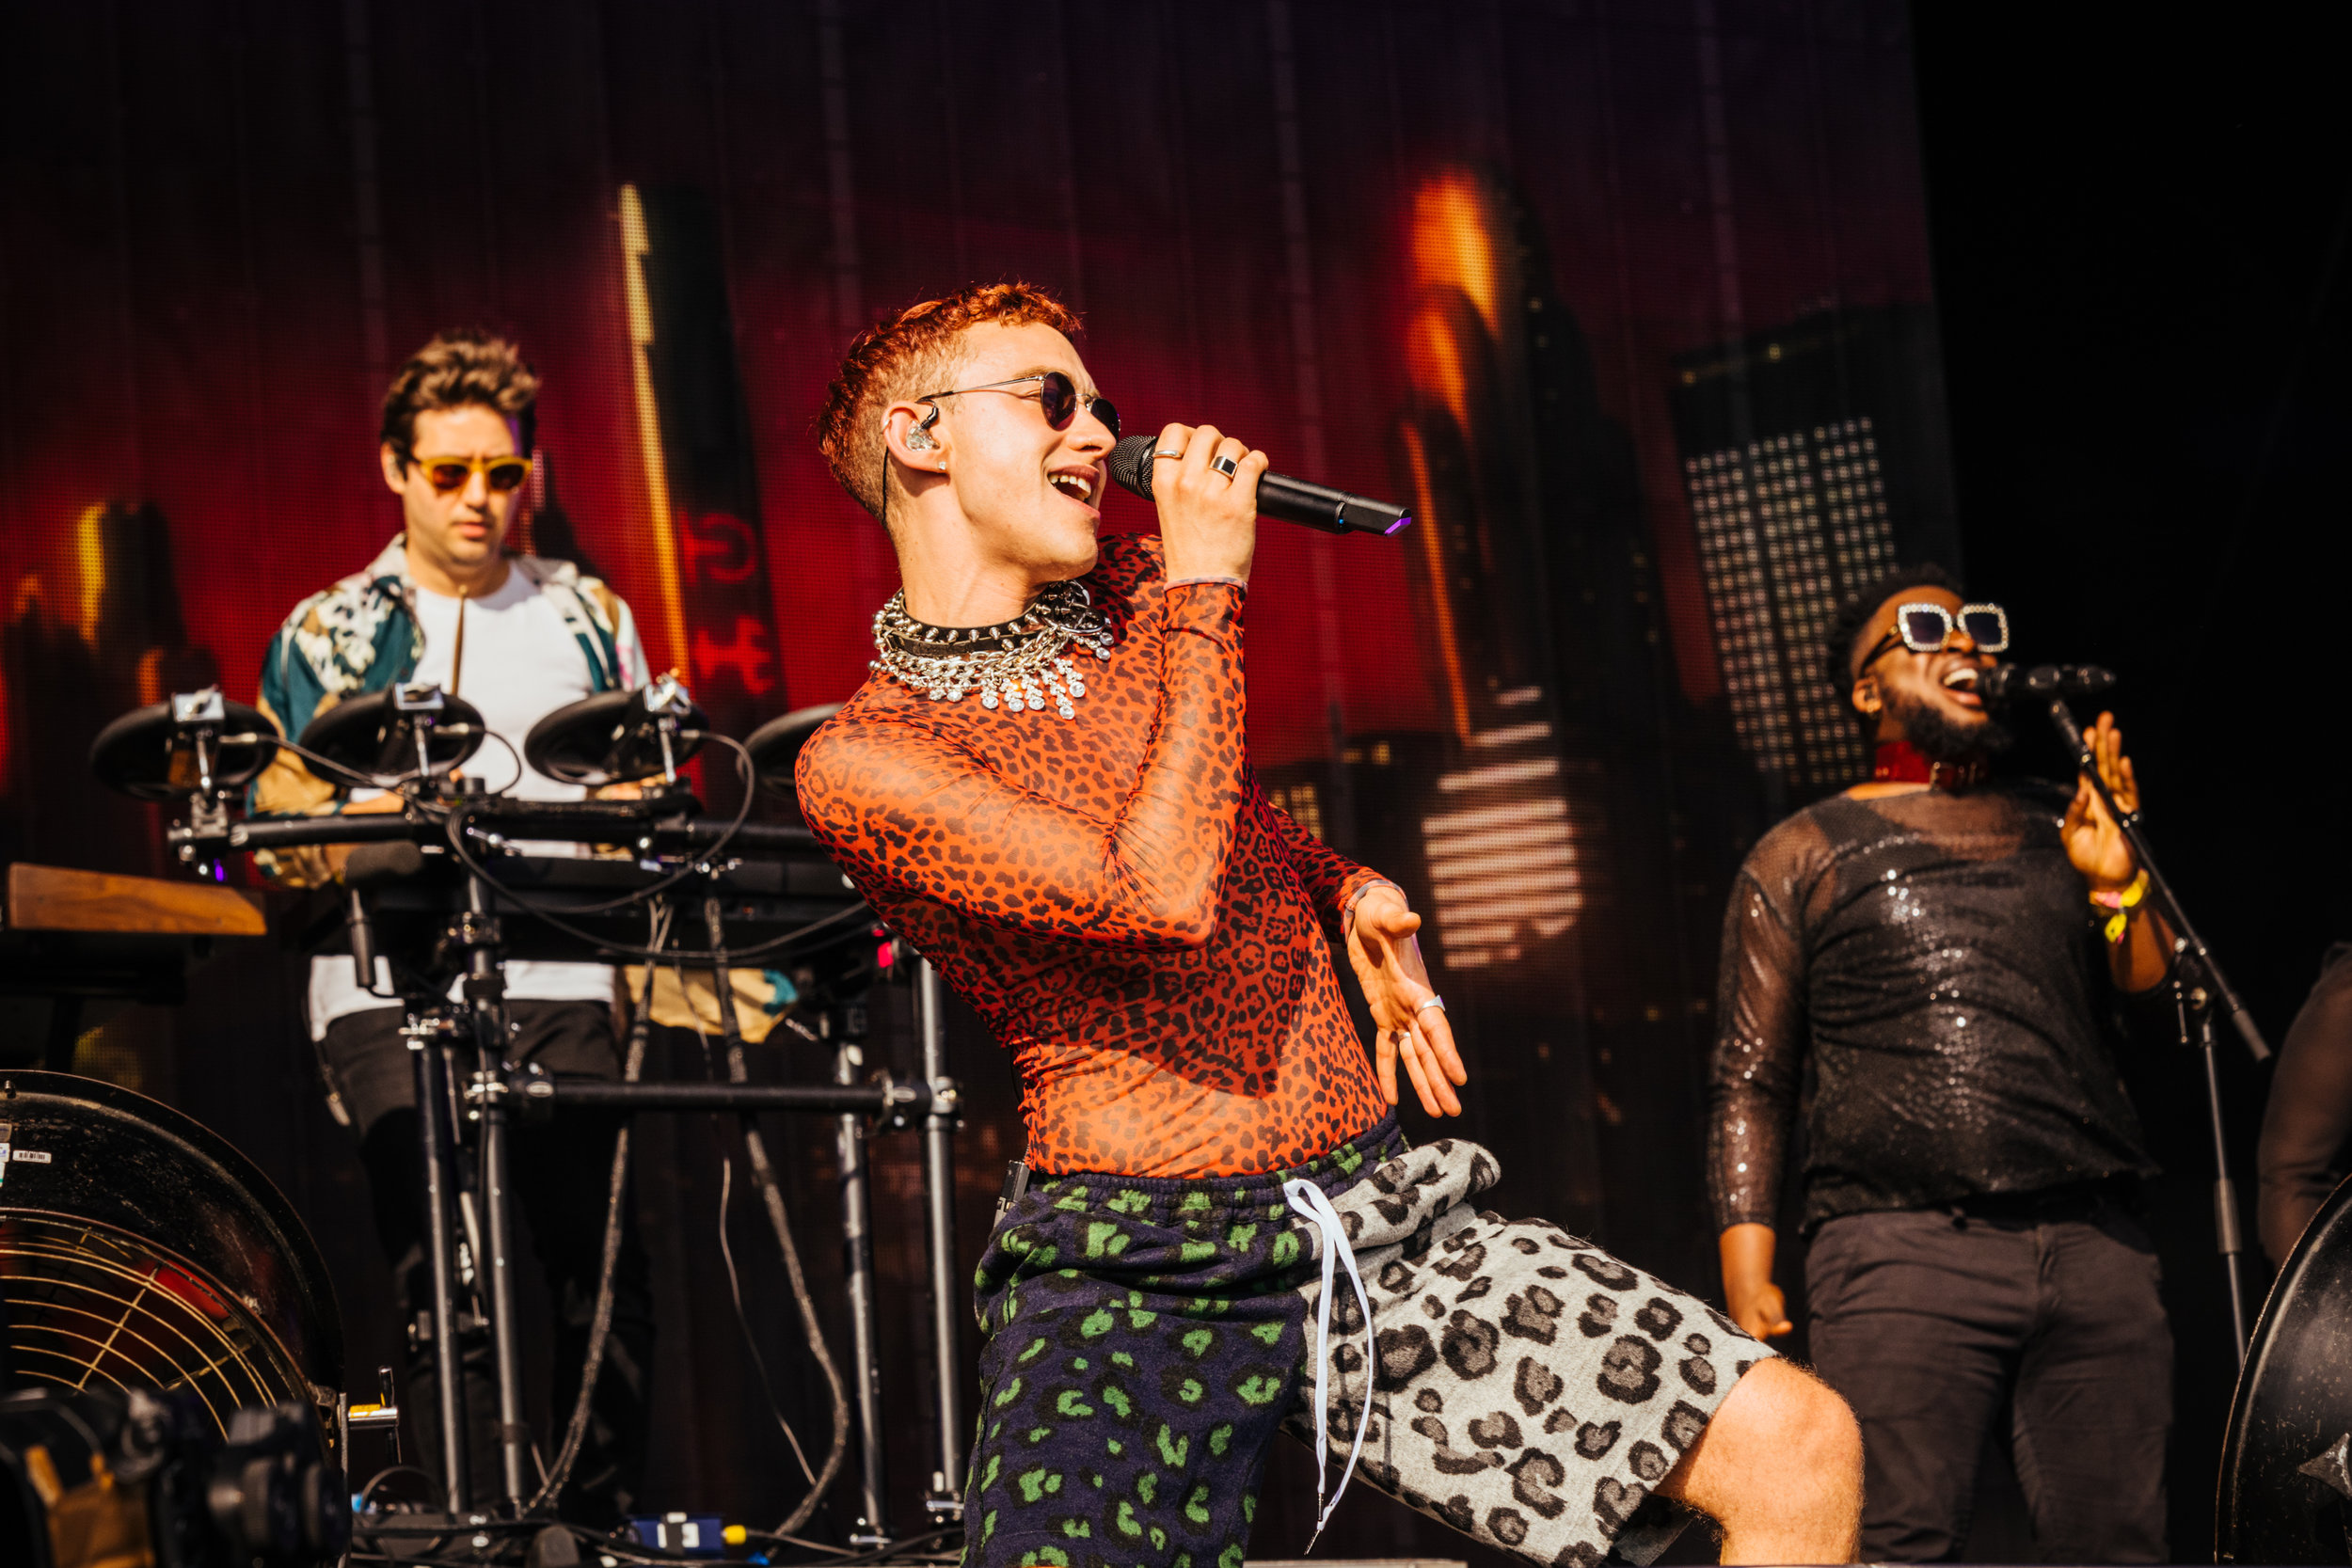 YEARS & YEARS PERFORMING AT TRNSMT FESTIVAL 2019  Picture By: Gaelle Beri